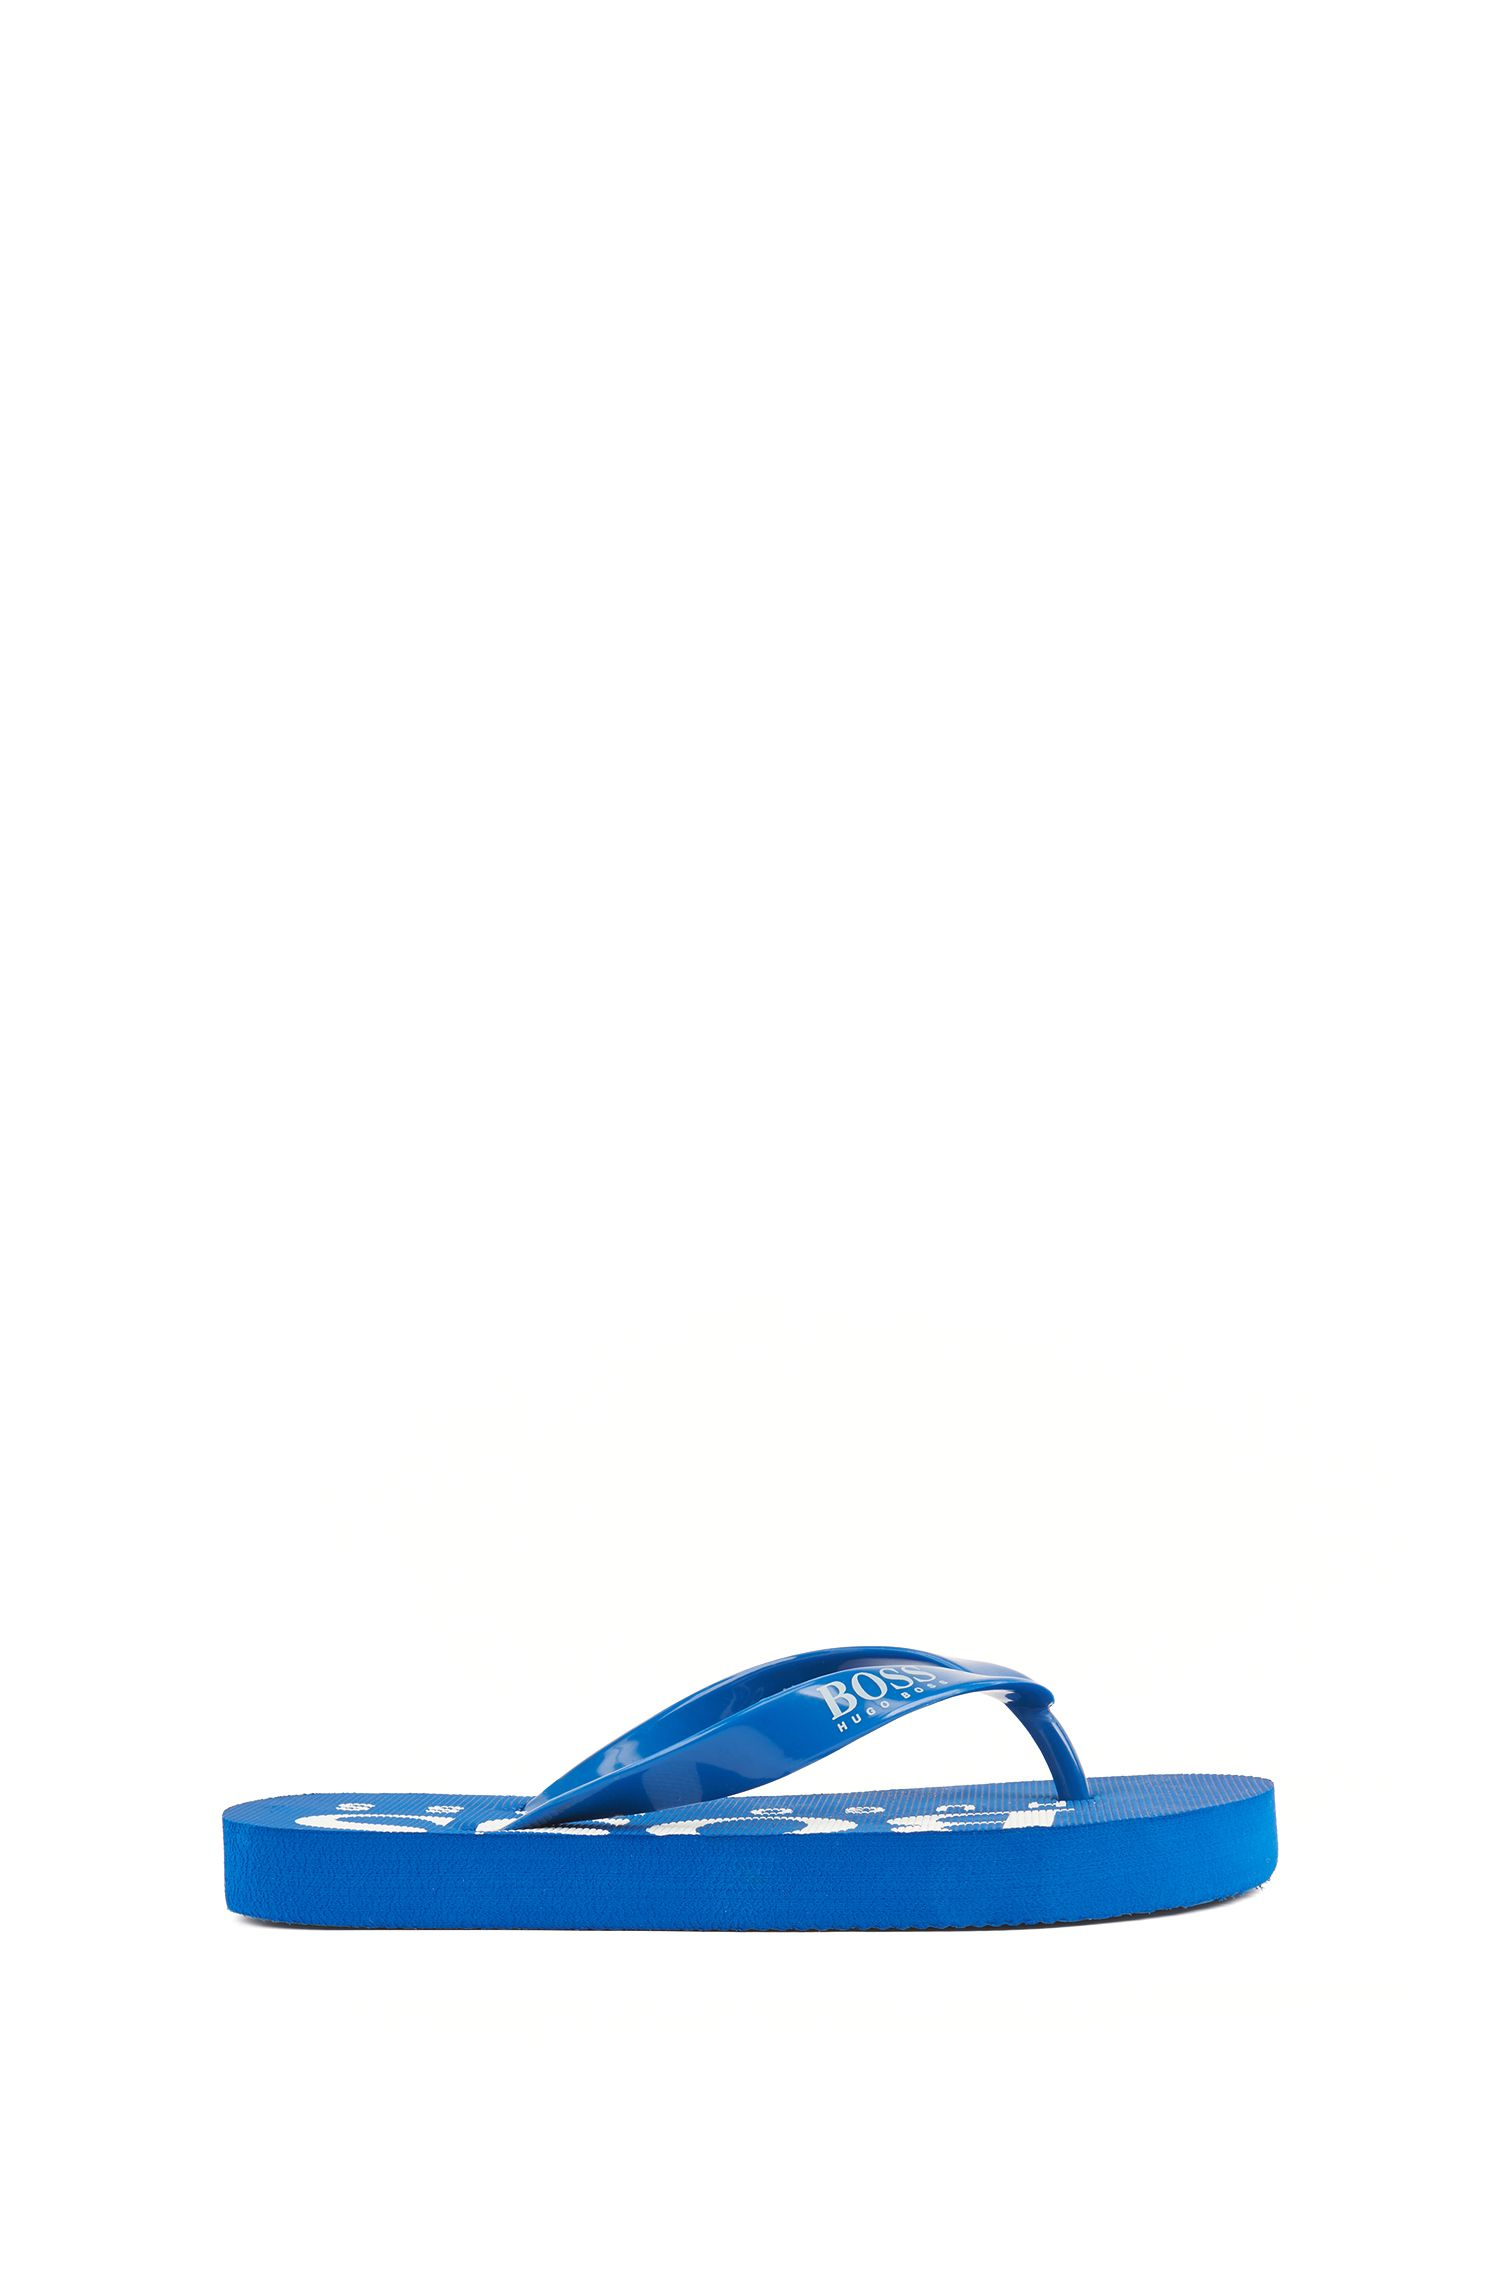 Kids' flip-flops with logo straps and detailing, Blue